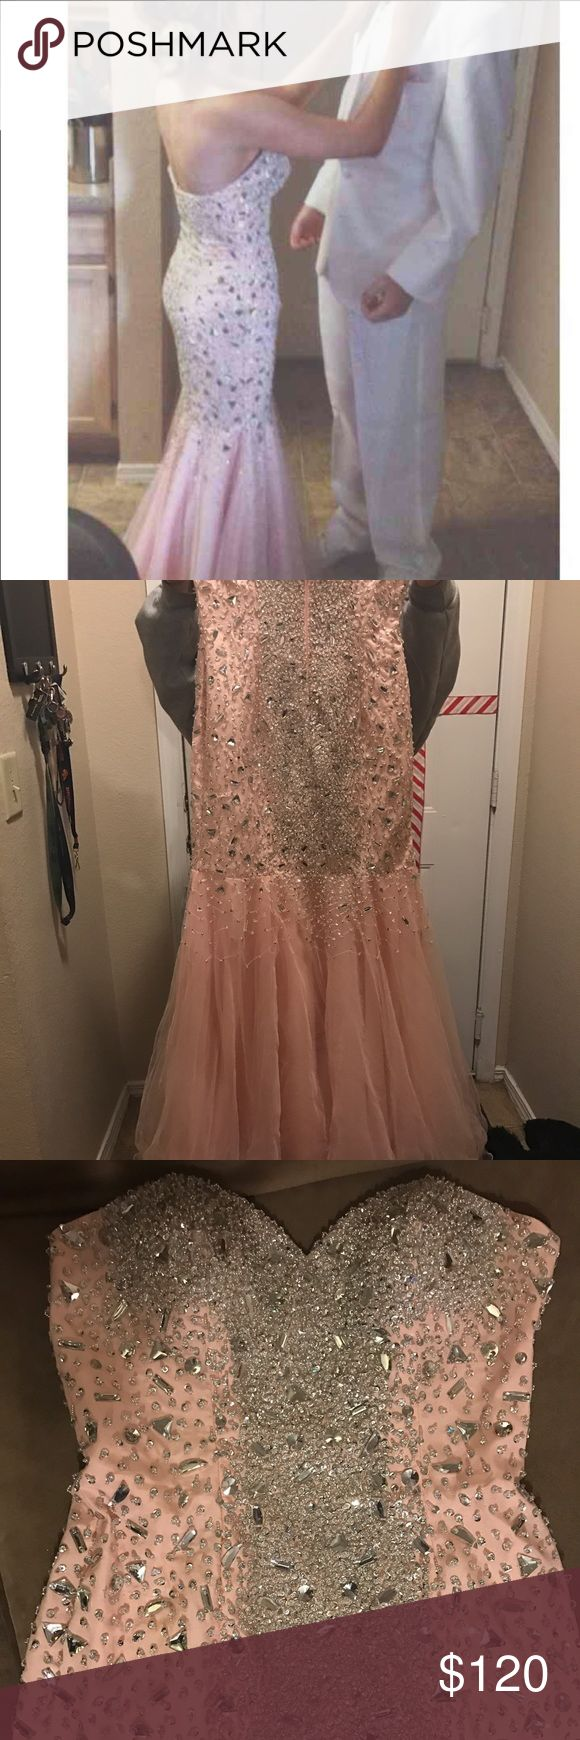 Peach tight fitting formal dress size 0 Never worn peach/light pink formal/prom dress can't find the tags to it but paid $250 asking $120. Very flattering and form fitting Dresses Prom